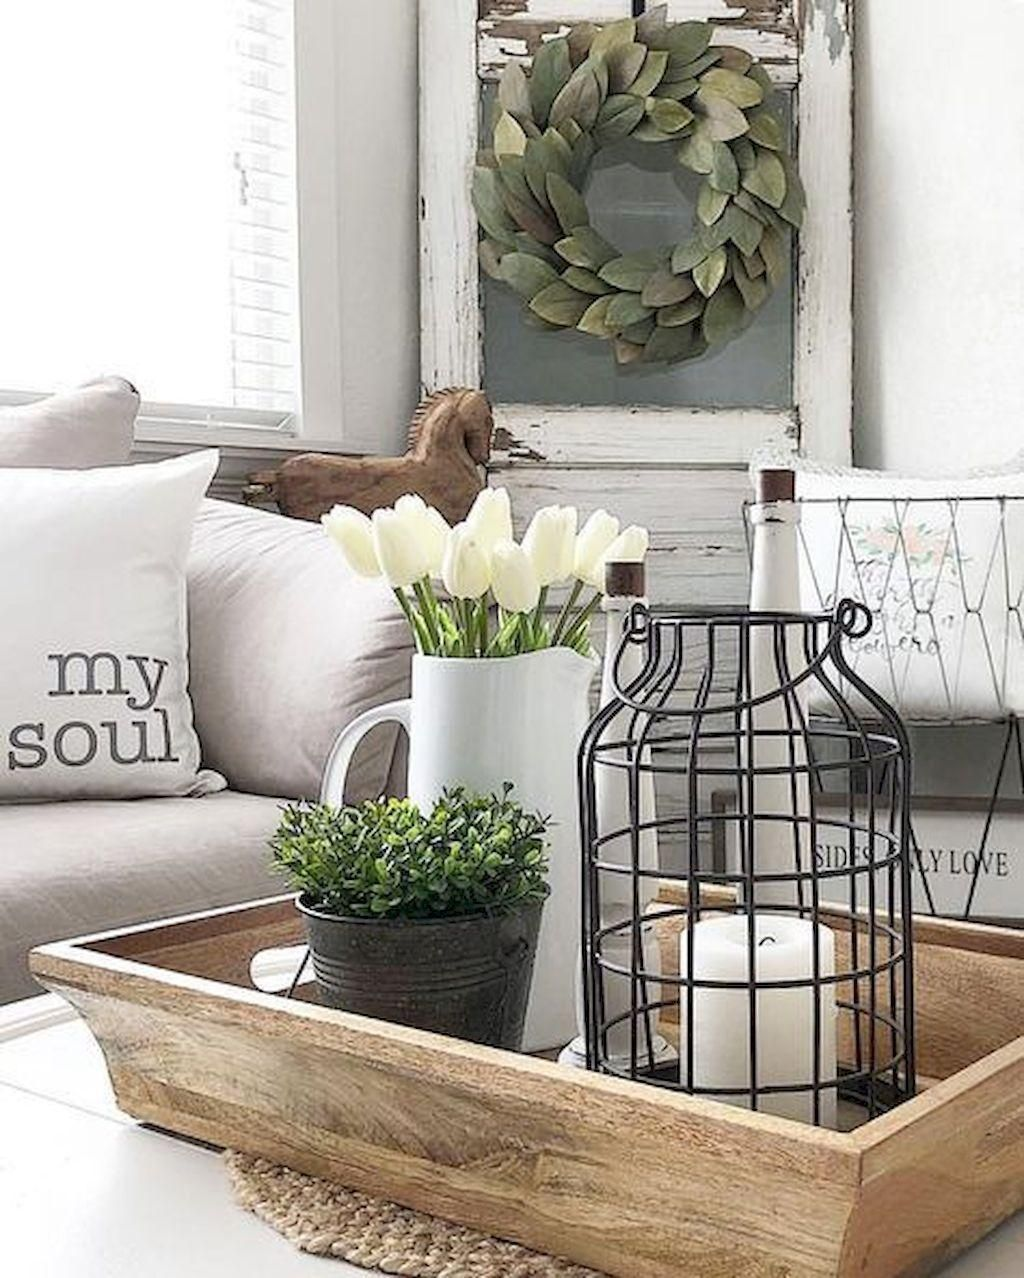 85 Charming Rustic Bedroom Ideas And Designs 4 In 2020: Brilliant Welcoming Designs Farmhouse Living Room In 2020